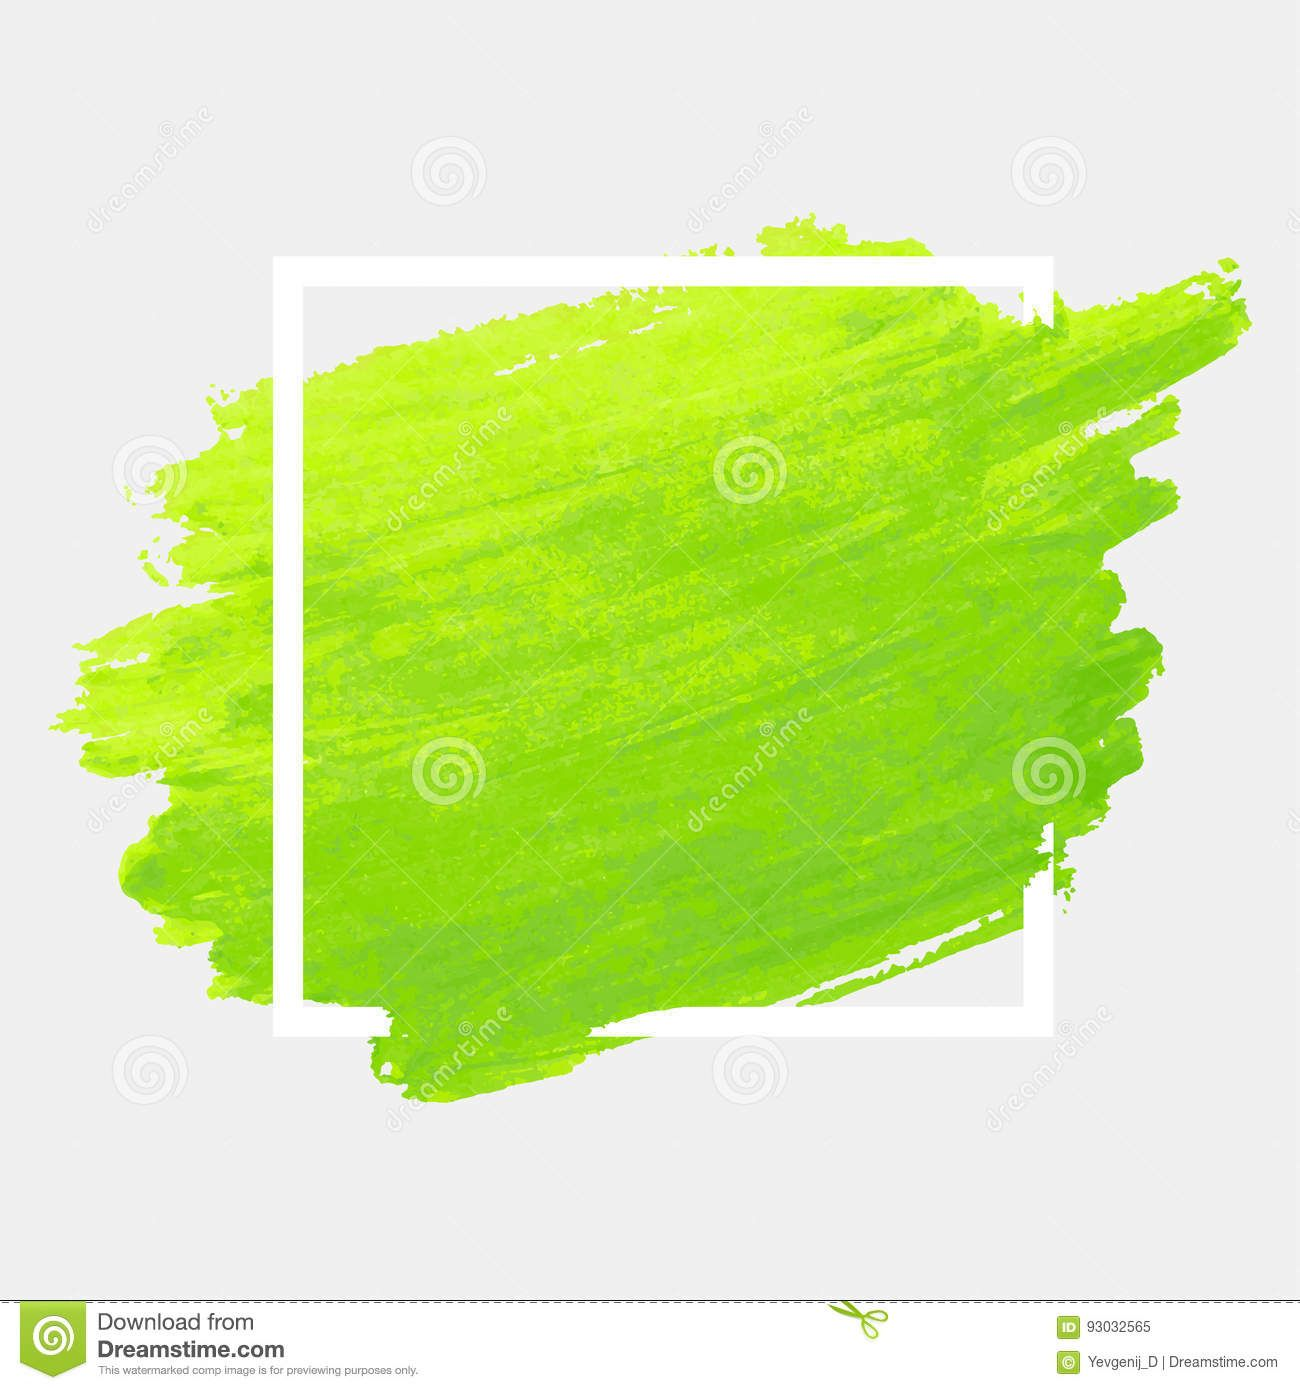 Green Watercolor Stroke With White Frame Grunge Abstract